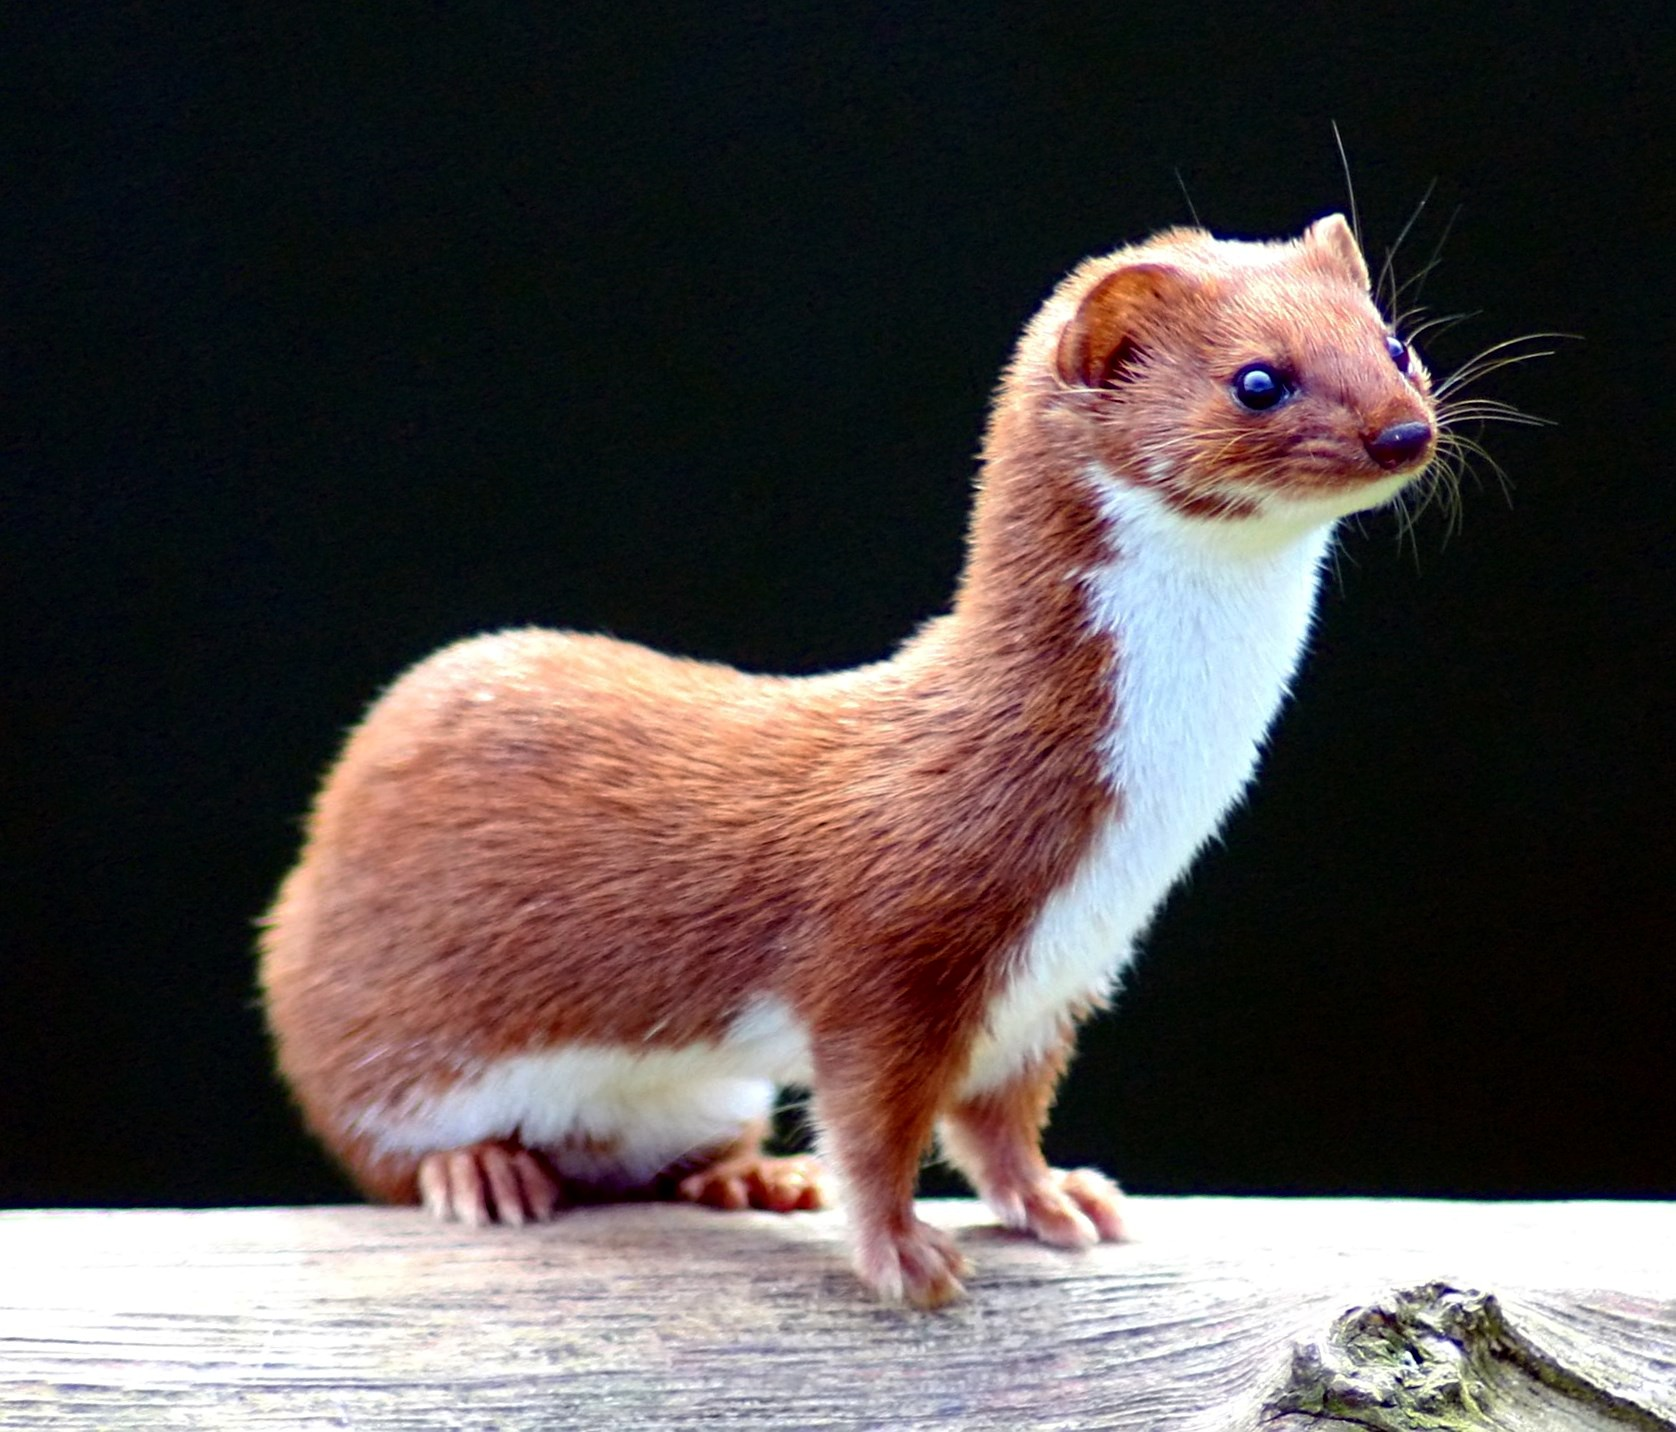 Weasel - Wikipedia, the free encyclopedia